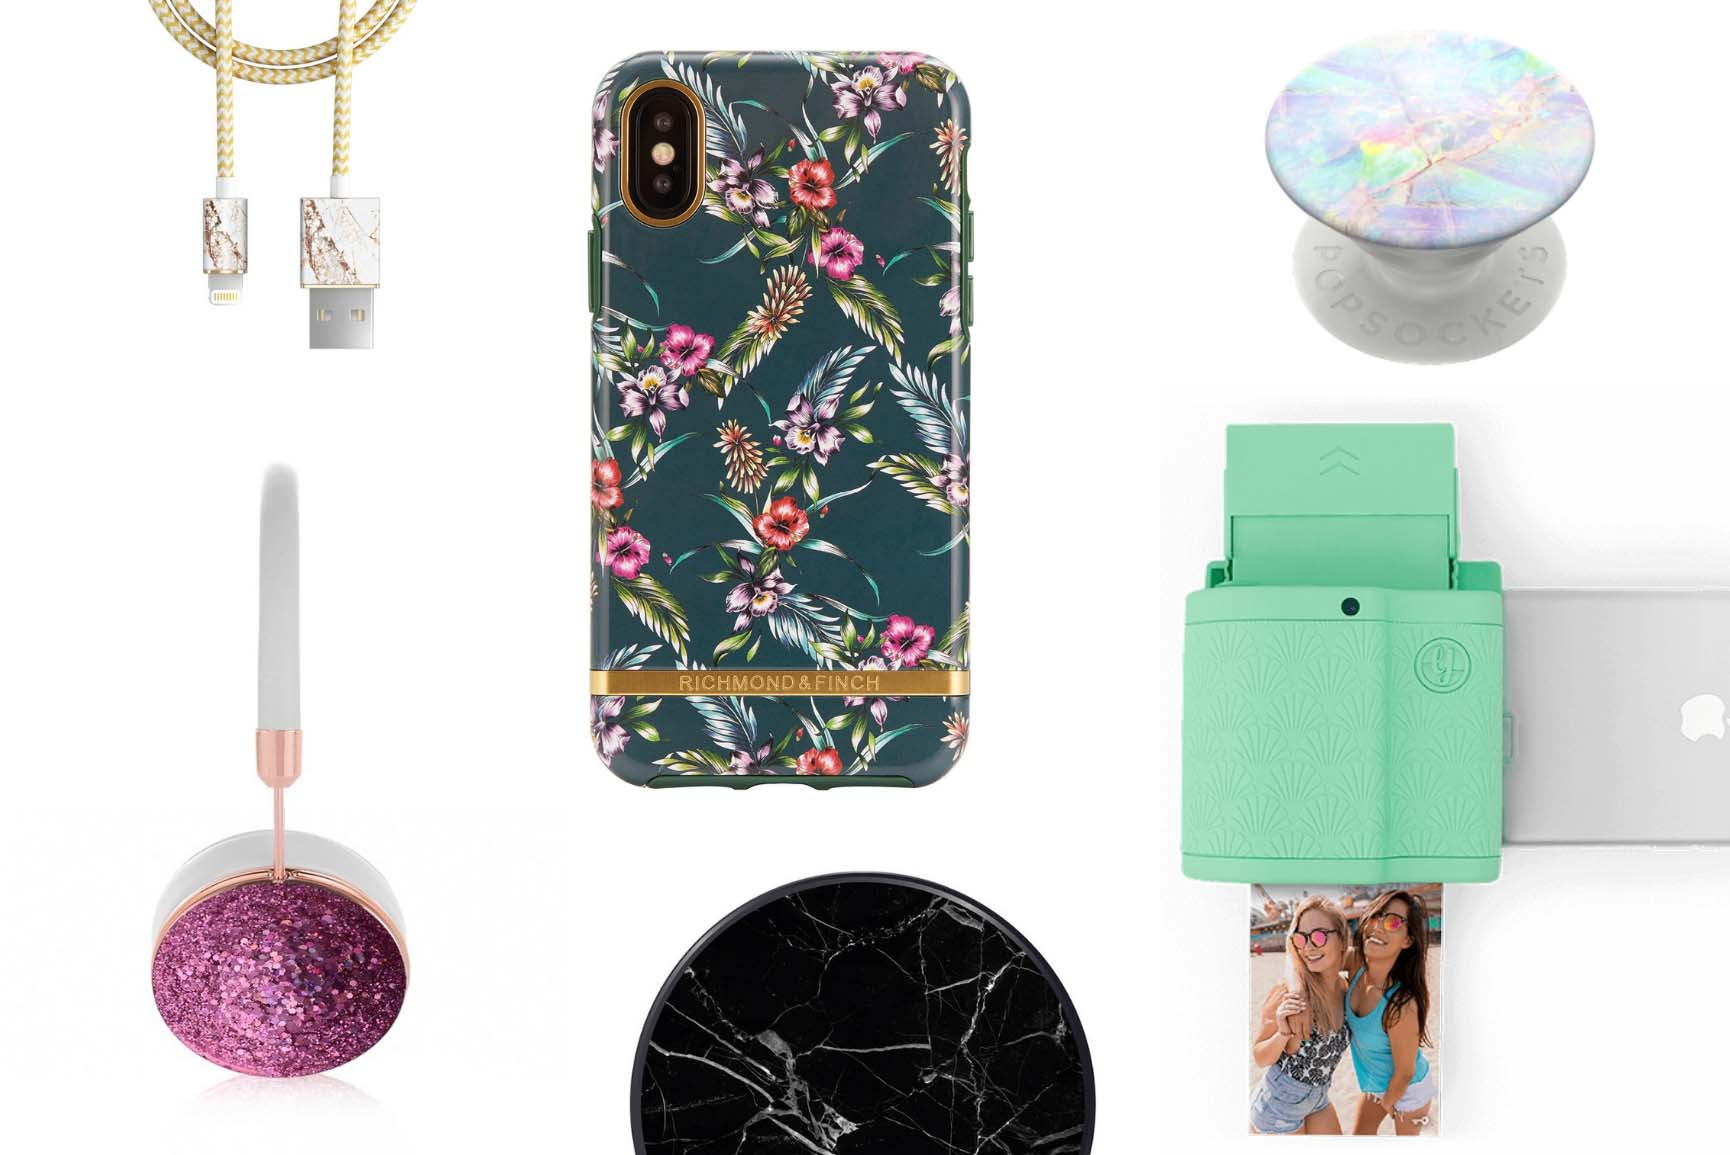 timeless design f7691 e319d Top 10 Must-Have Accessories For Your New iPhone Xs | Preppy Wallpapers